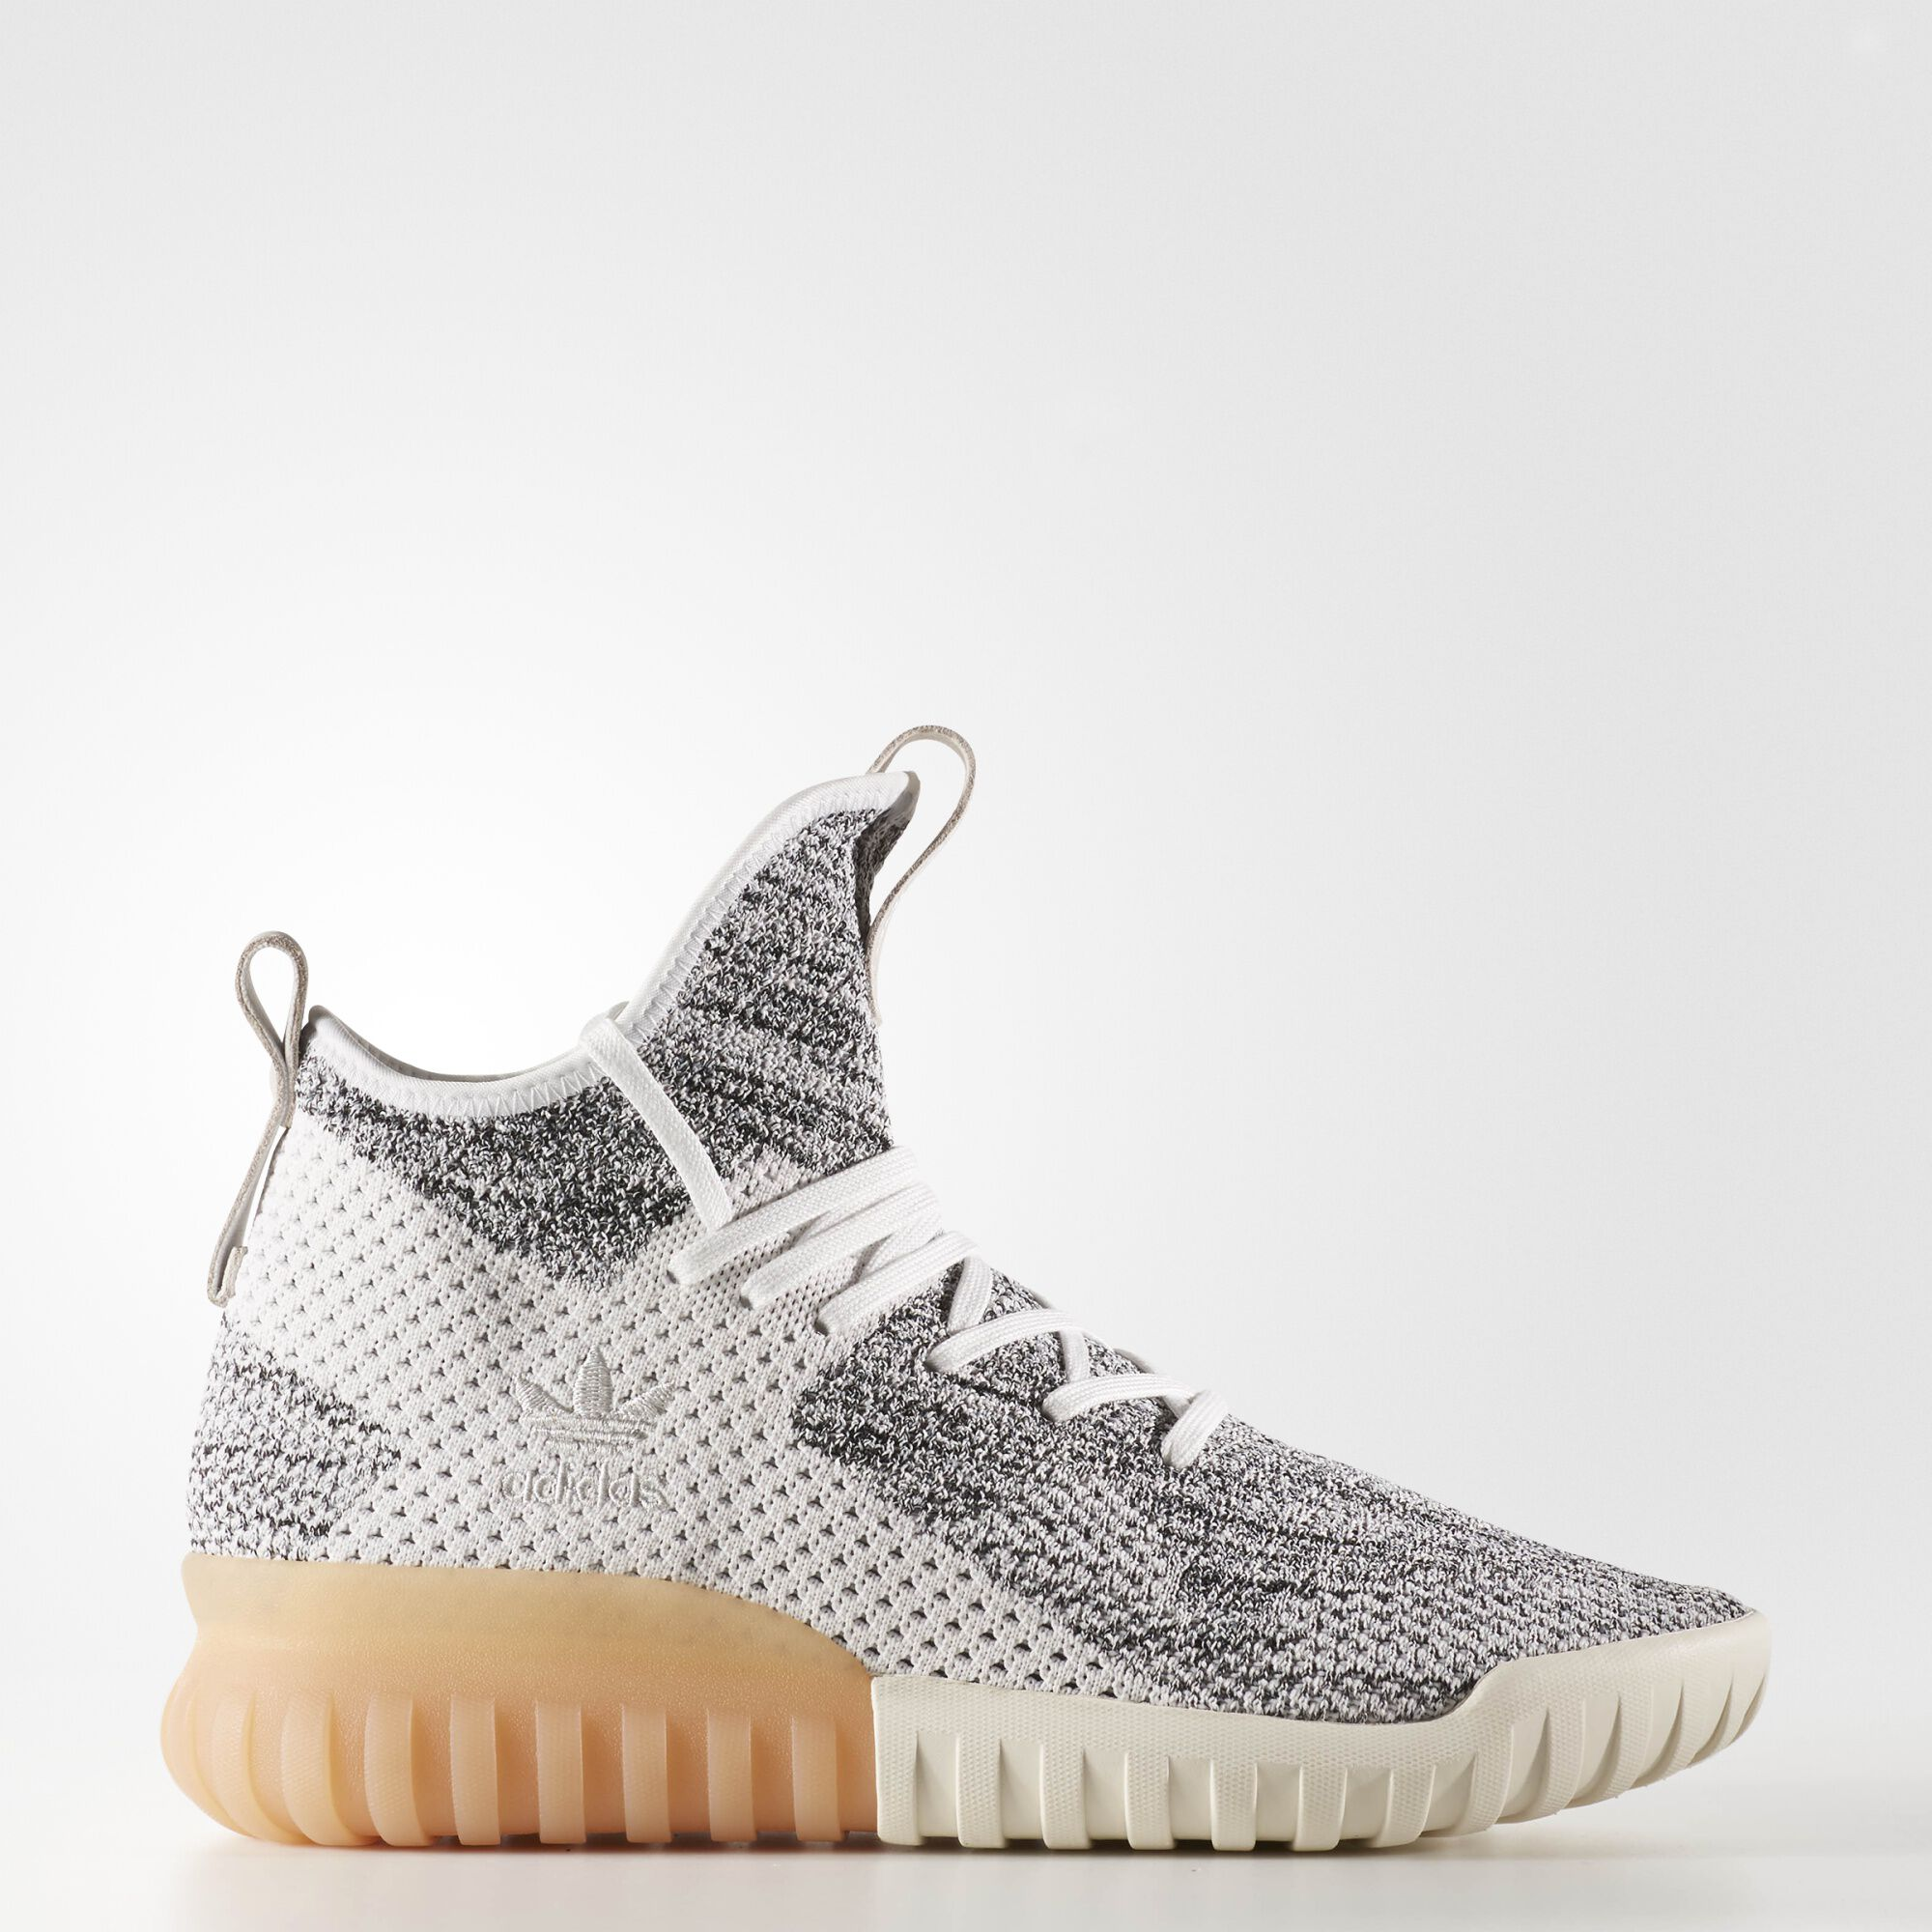 Solid Grey Highlights This adidas Tubular X